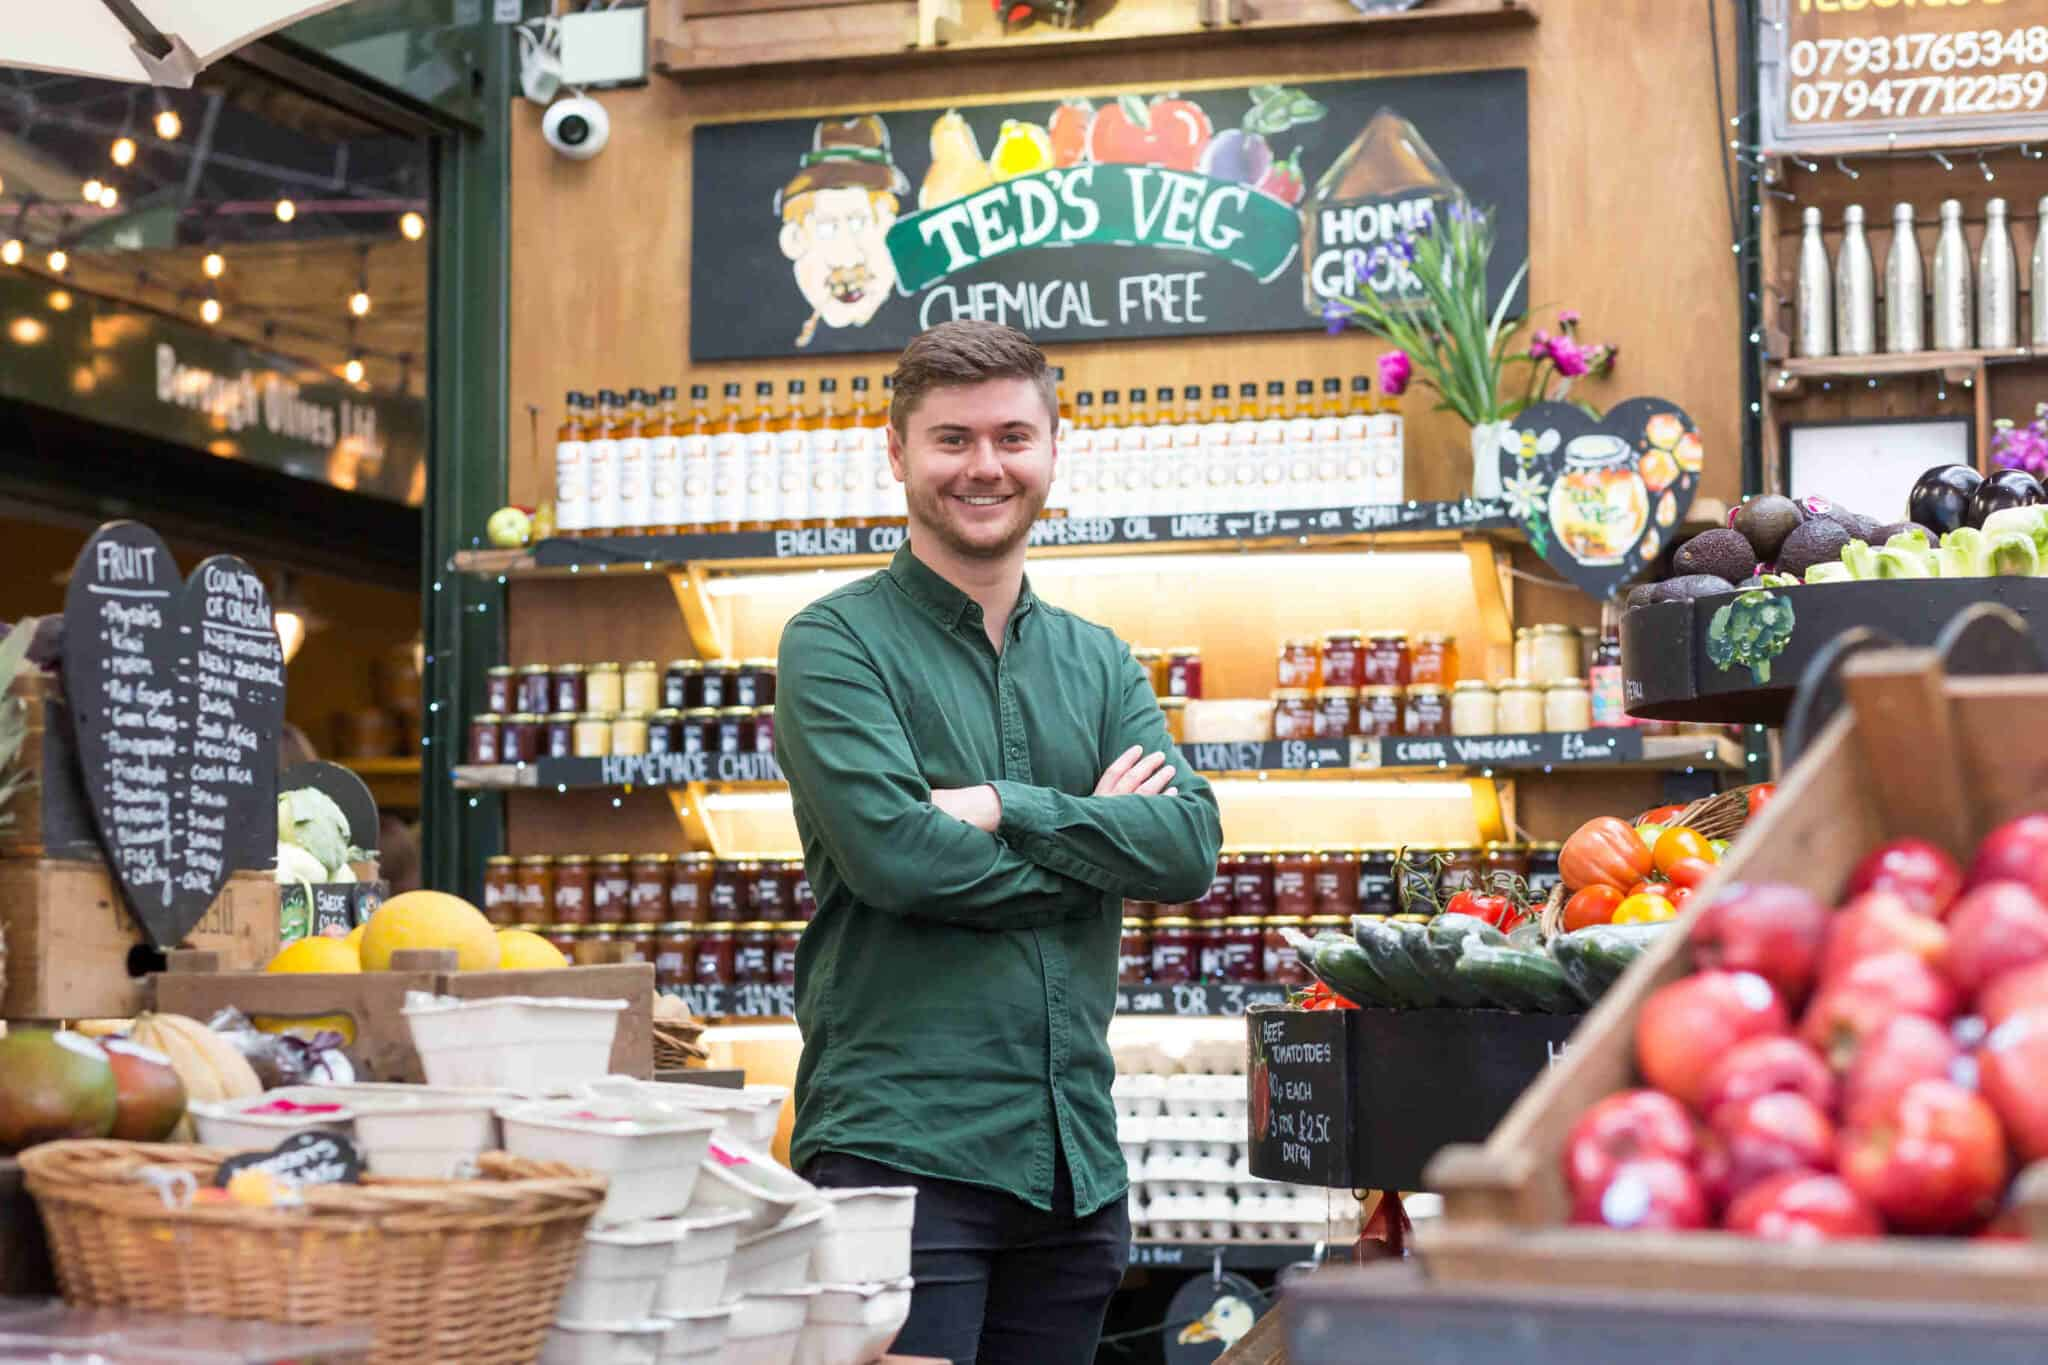 Sam is standing with his arms crossed in front of an array of fruit and vegetables. Behind him are 3 shelves laden with condiments and oils. He's wearing a green shirt and smiling.